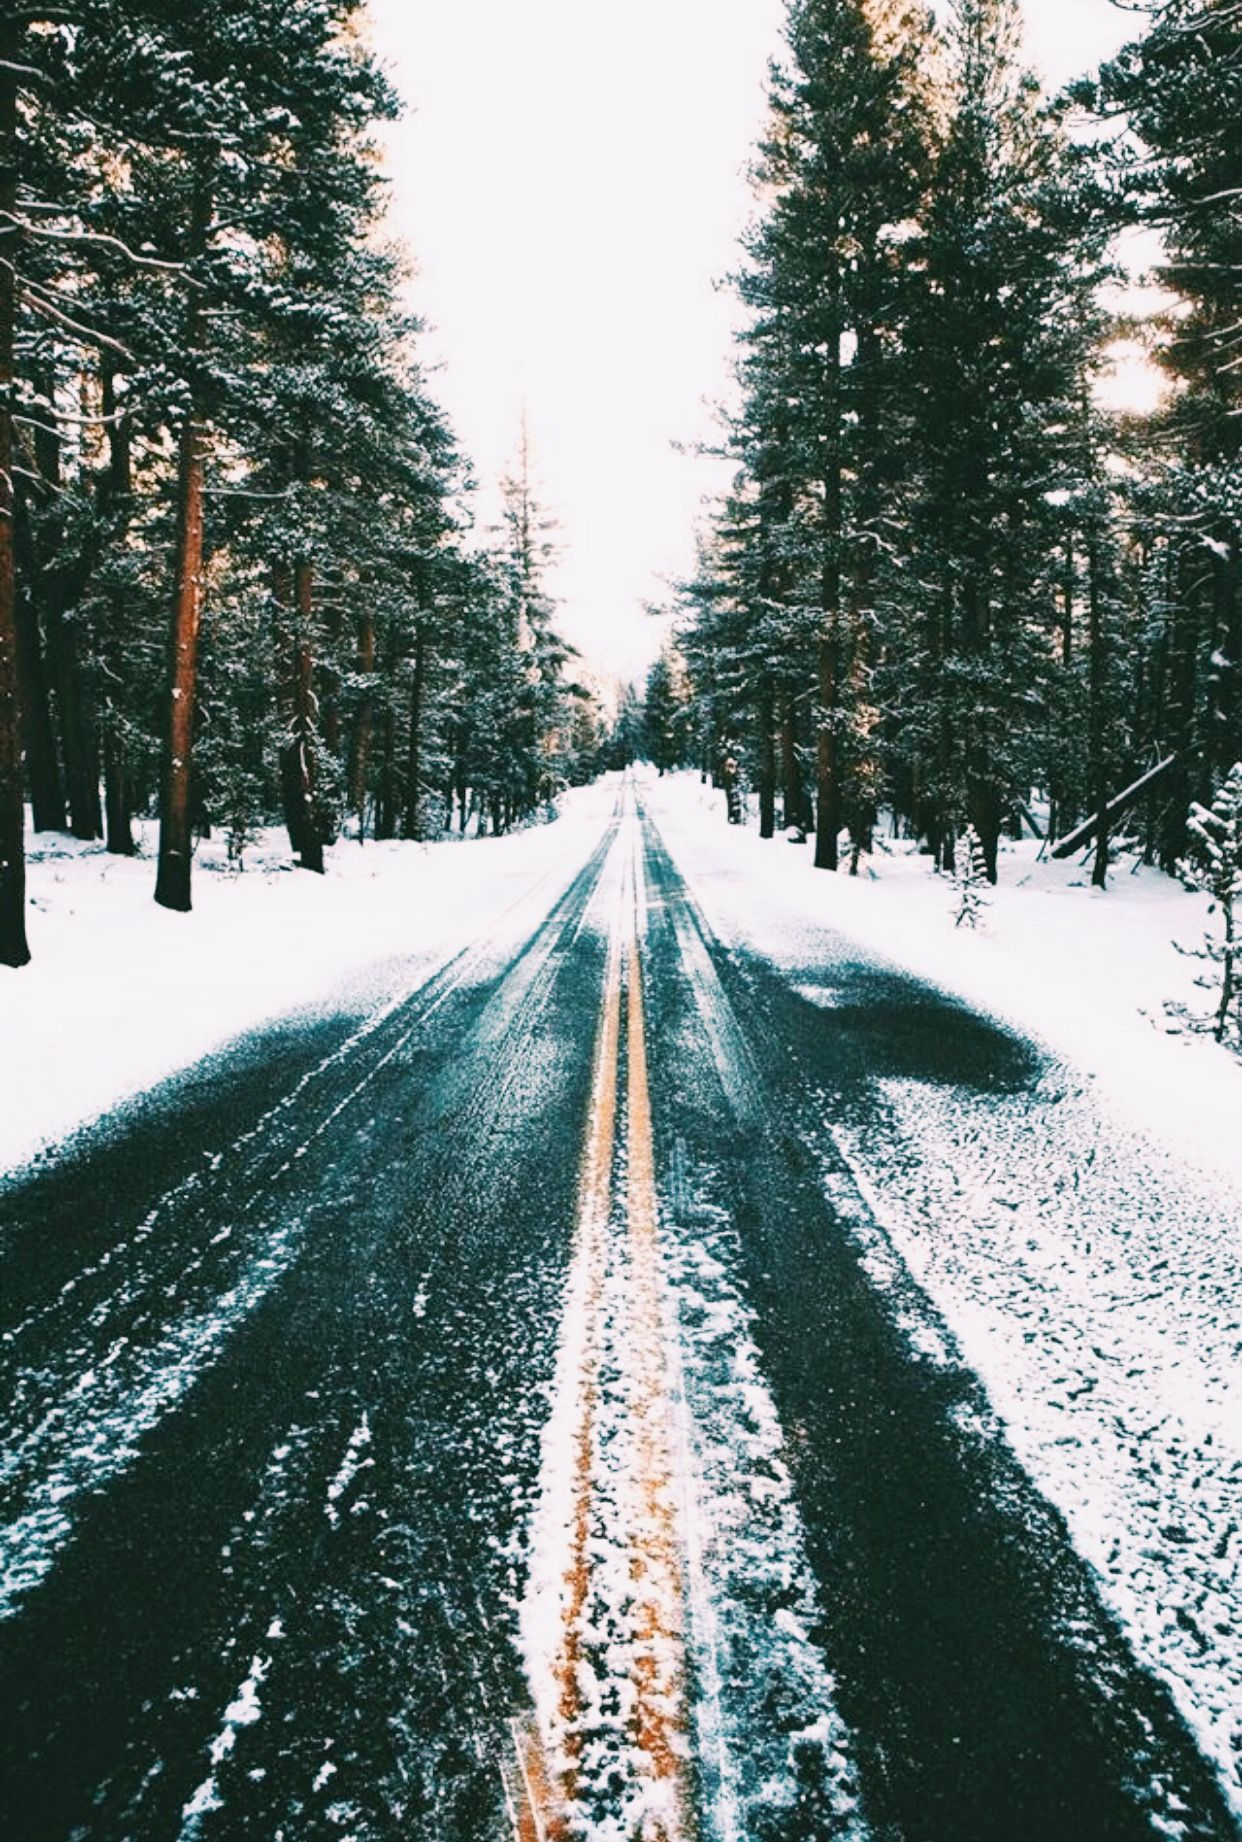 Oliviaagrayee Iphone Wallpaper Winter Winter Wallpaper